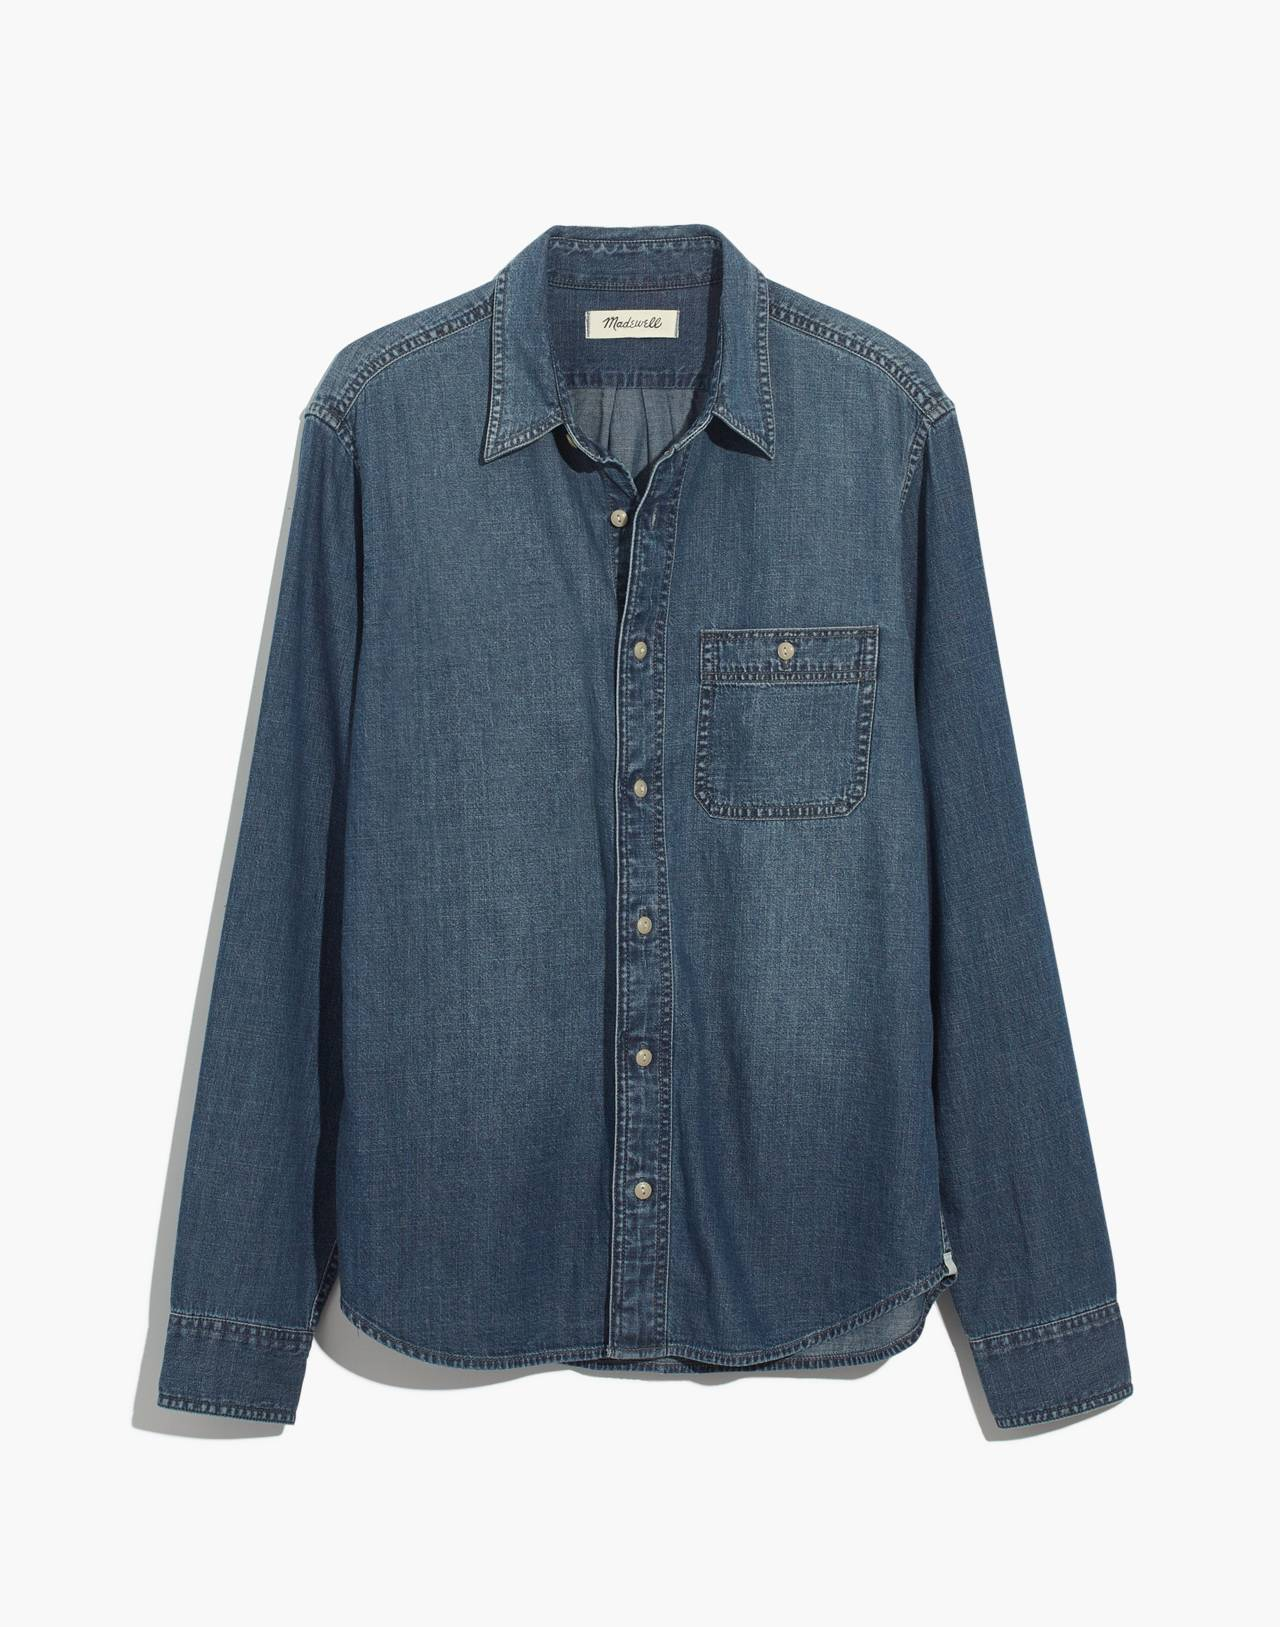 Denim Button-Down Shirt in Newhall Wash in newhall wash image 4